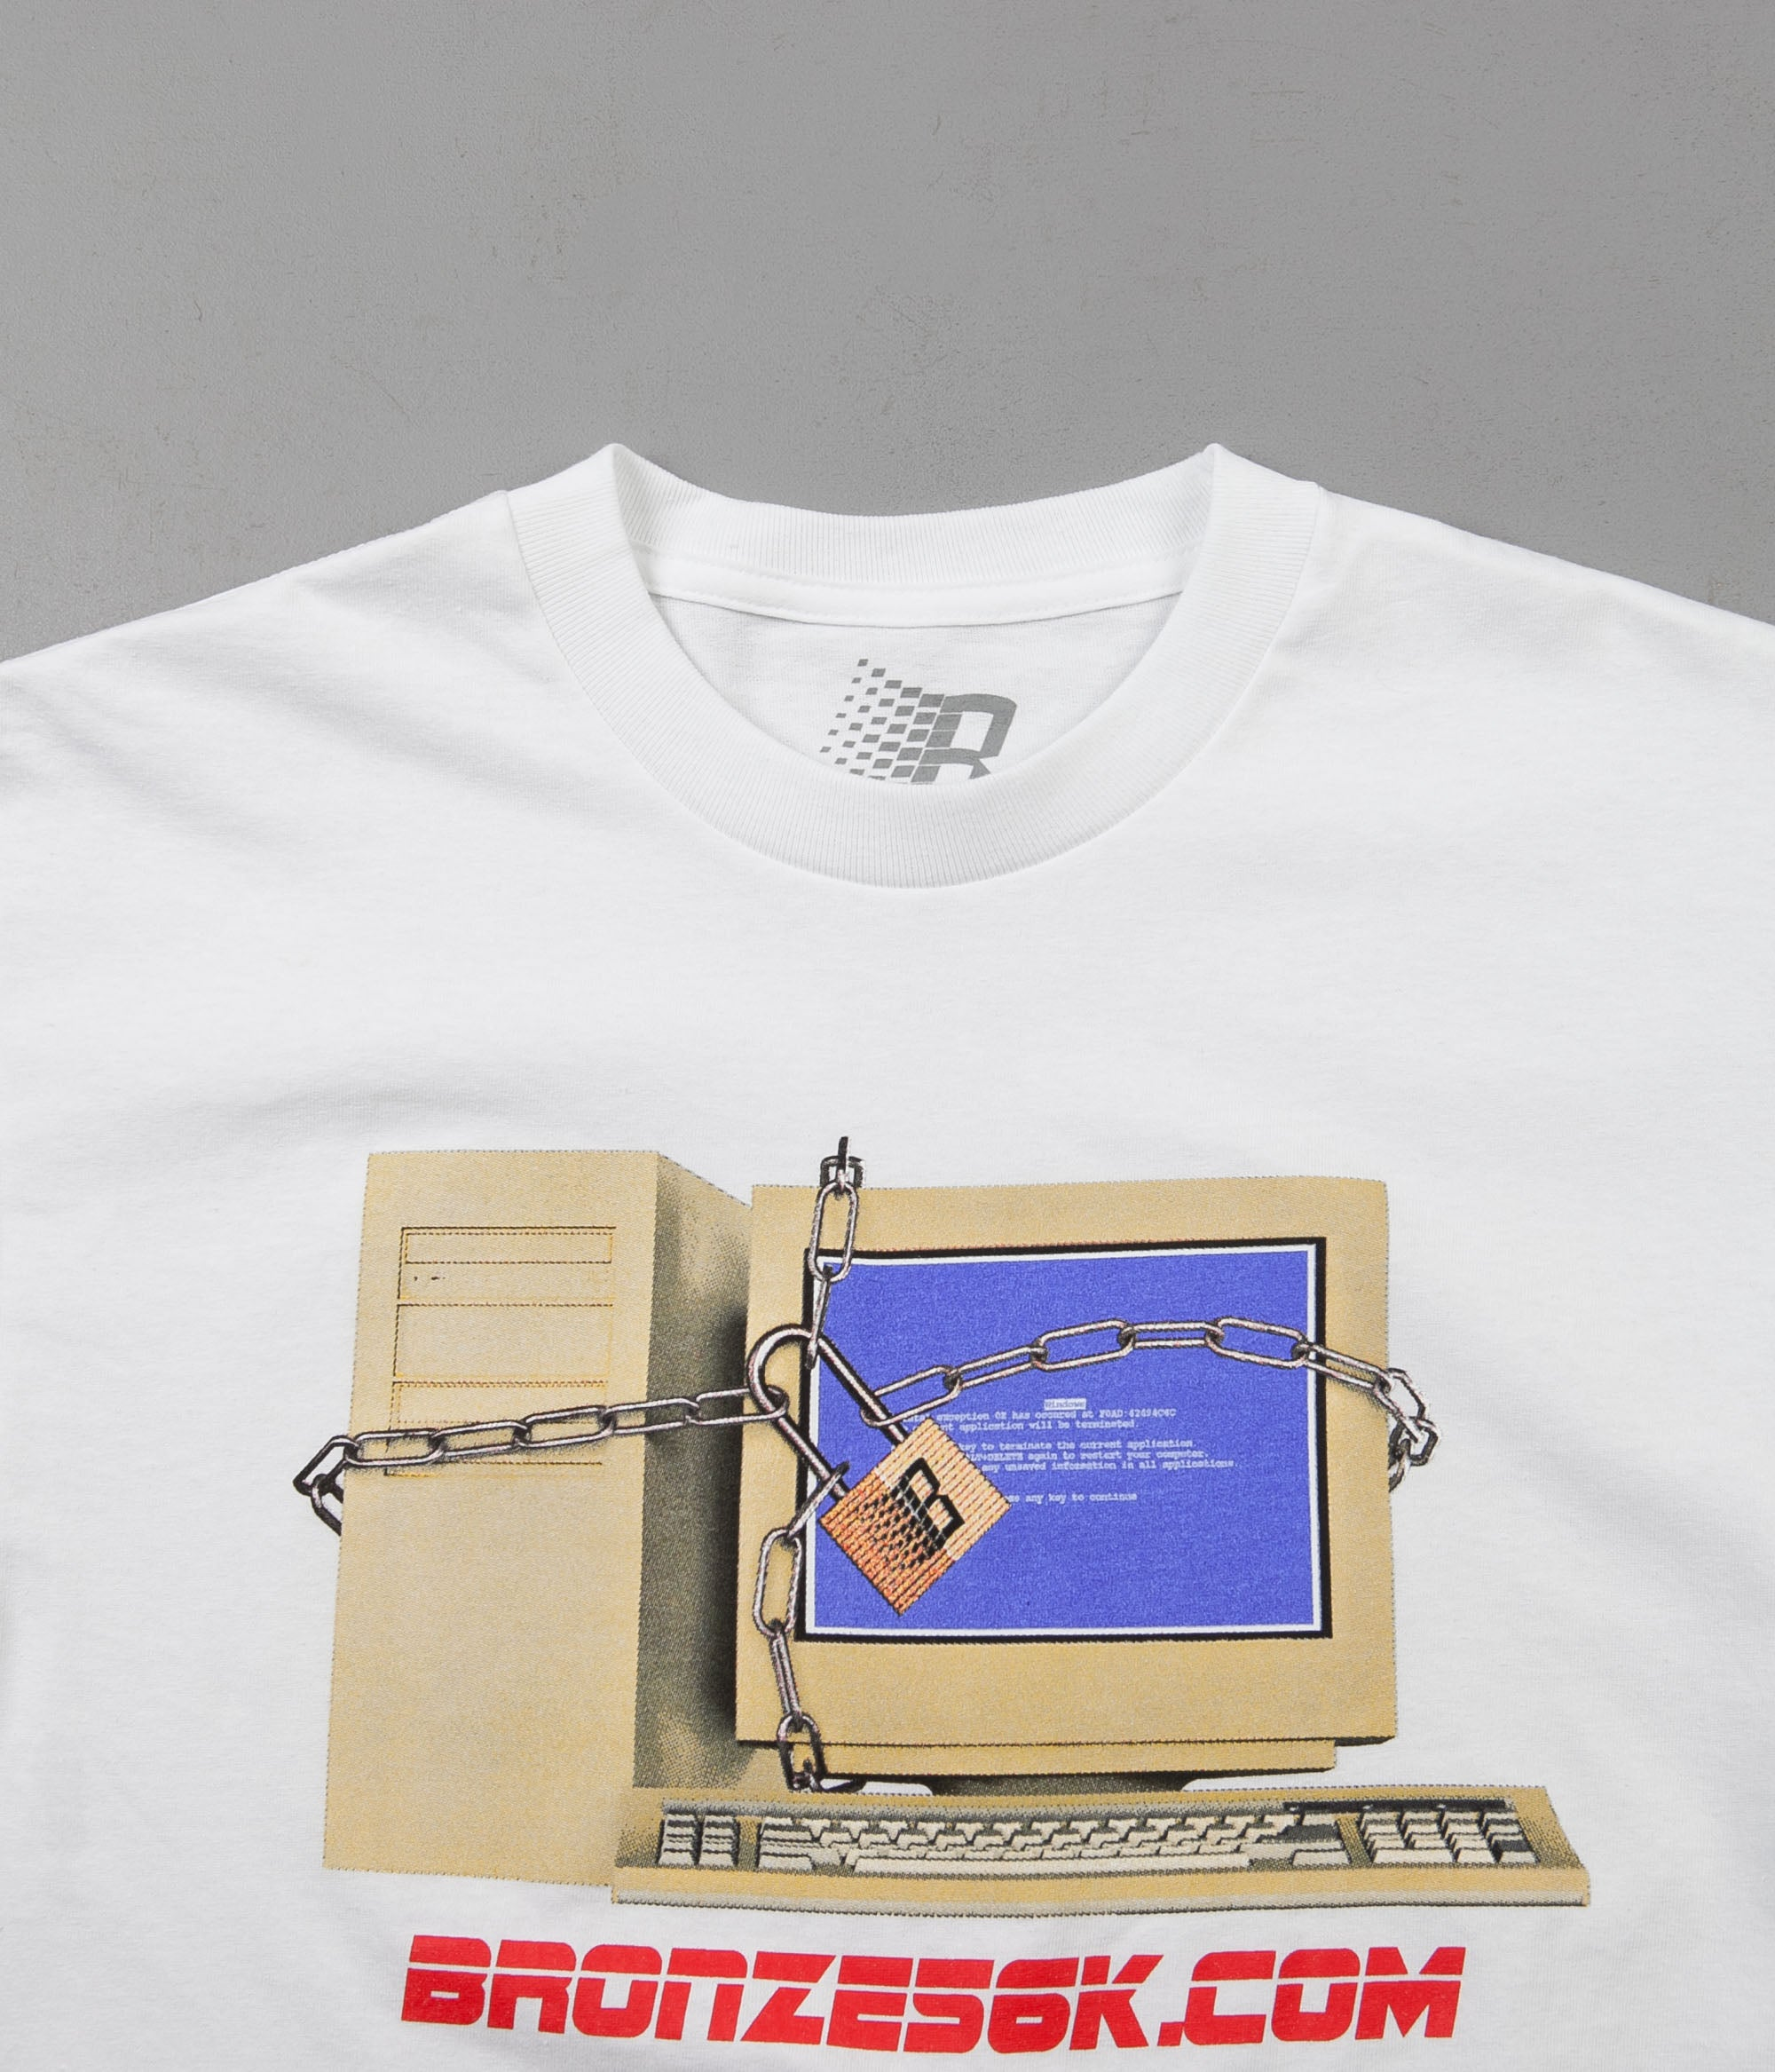 Bronze 56k Firewall T-Shirt - White